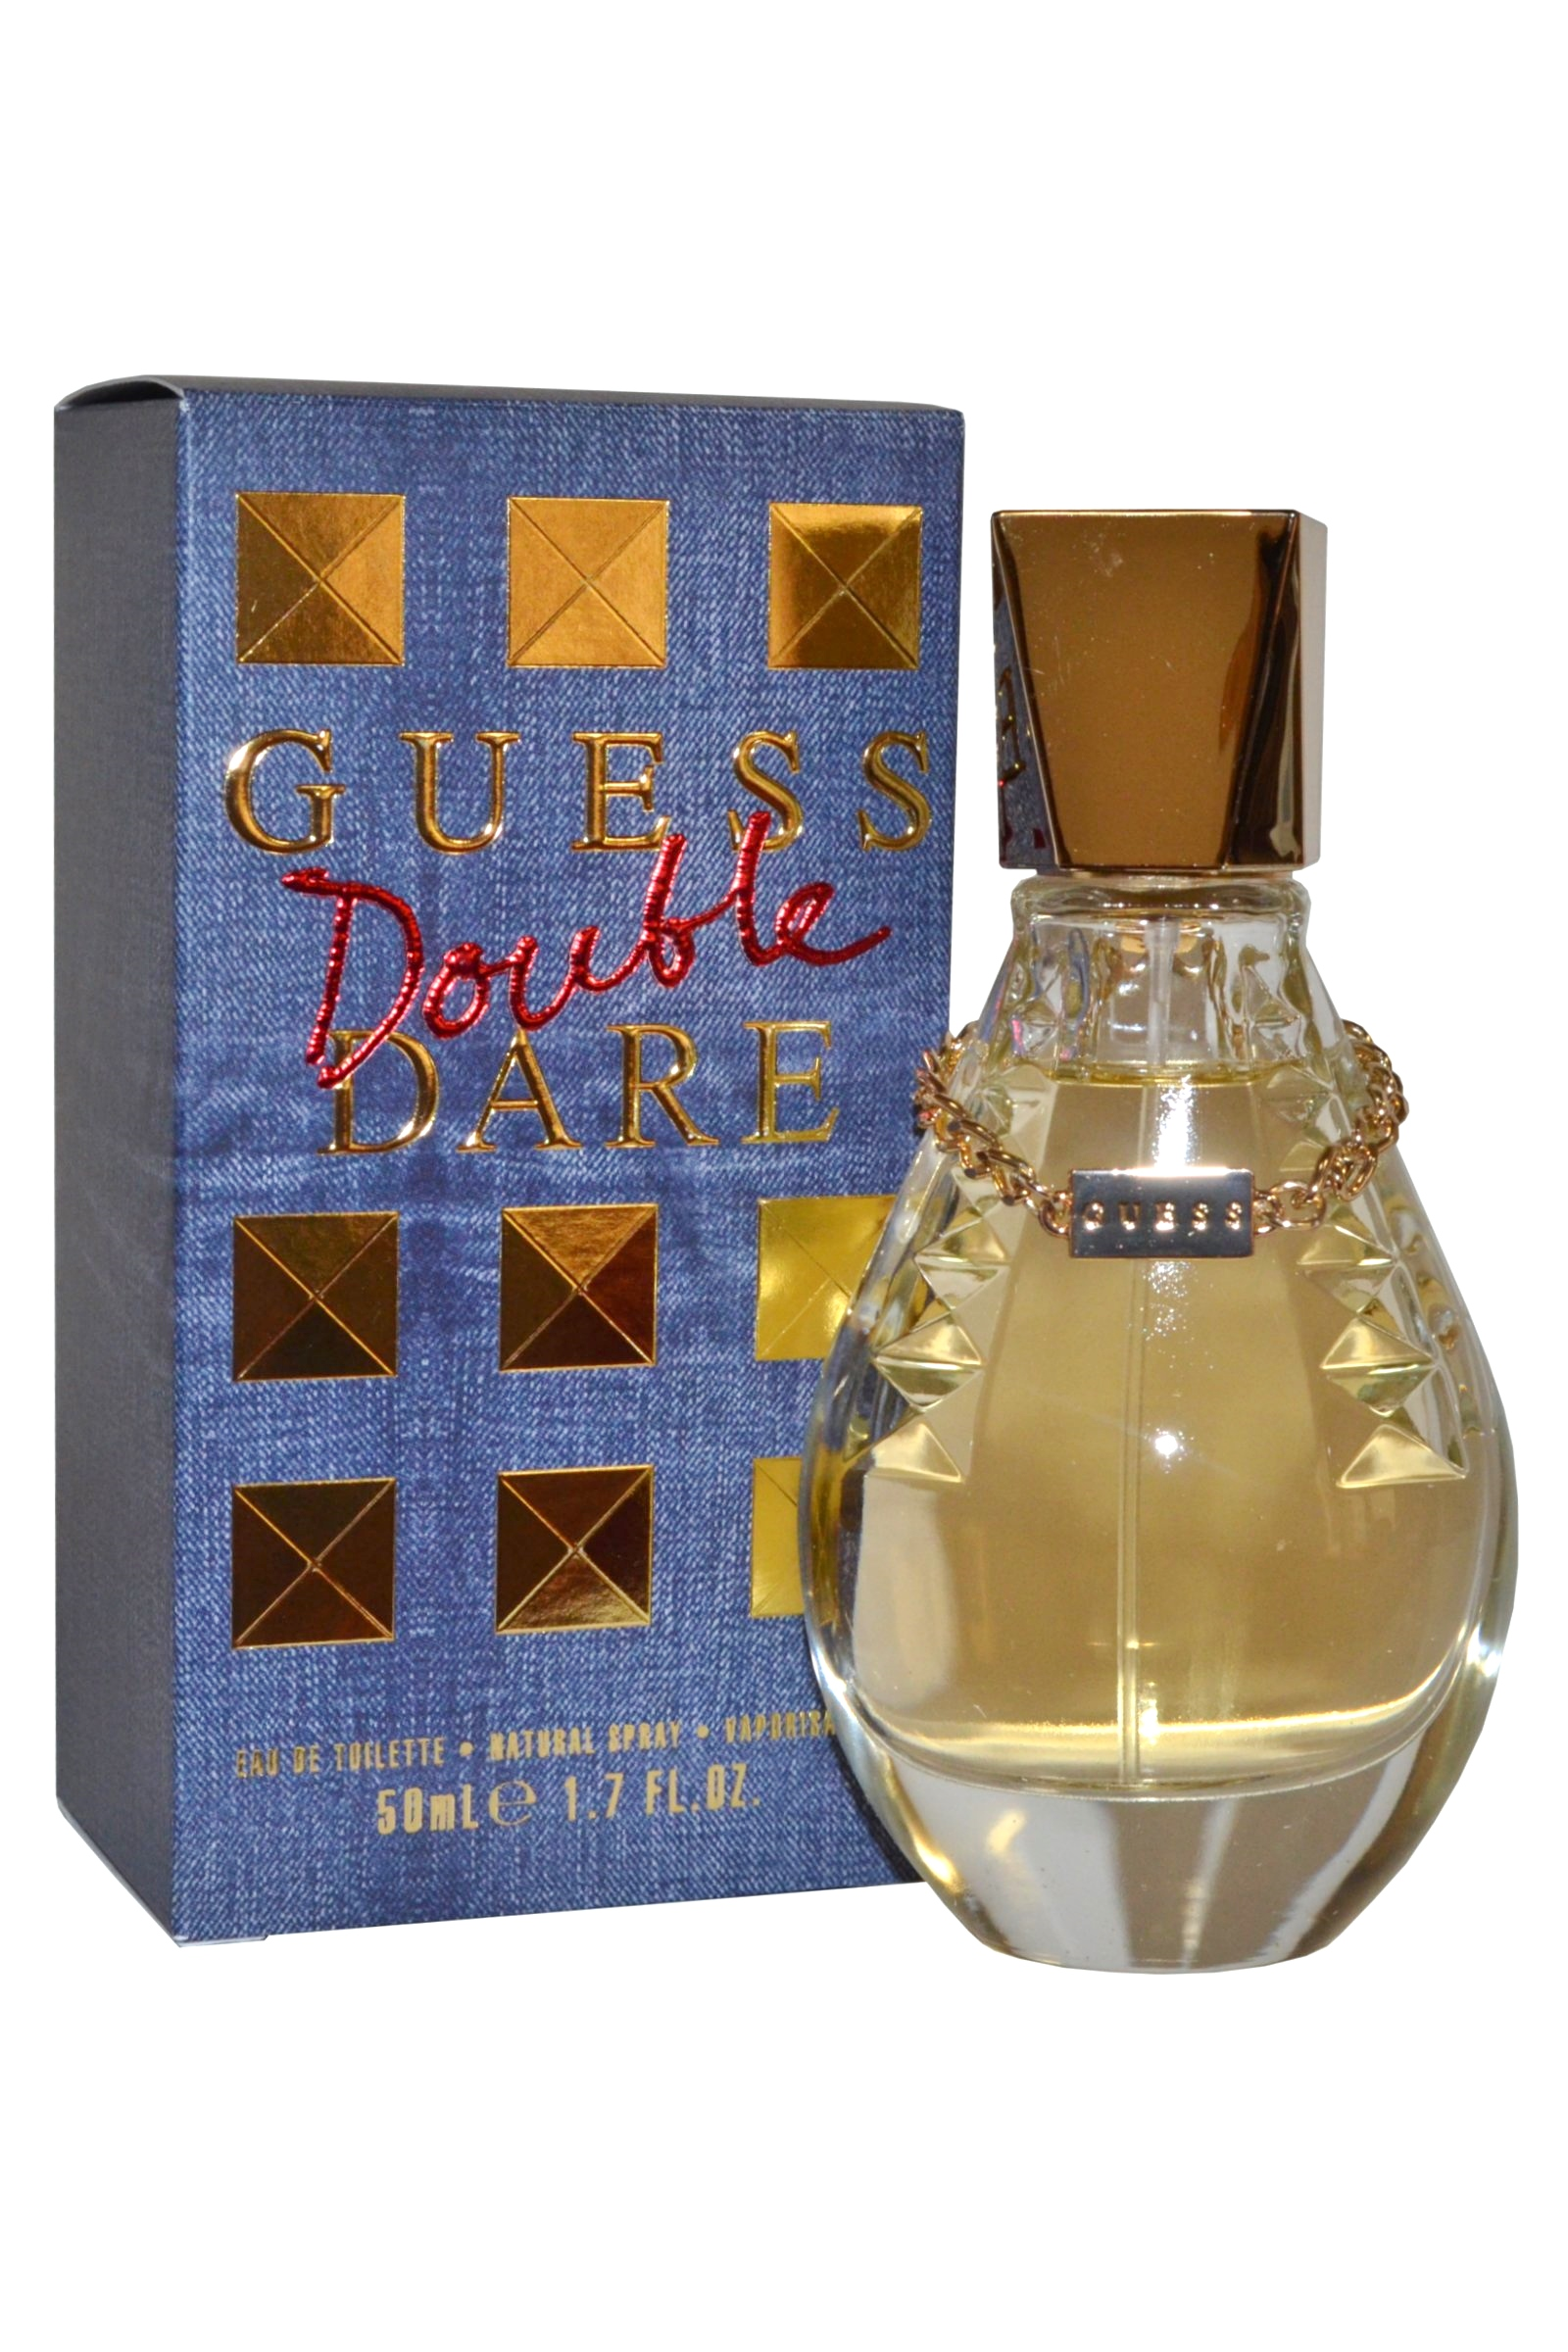 Details about Guess Dare by Guess, 3.4 oz EDT Spray for Women